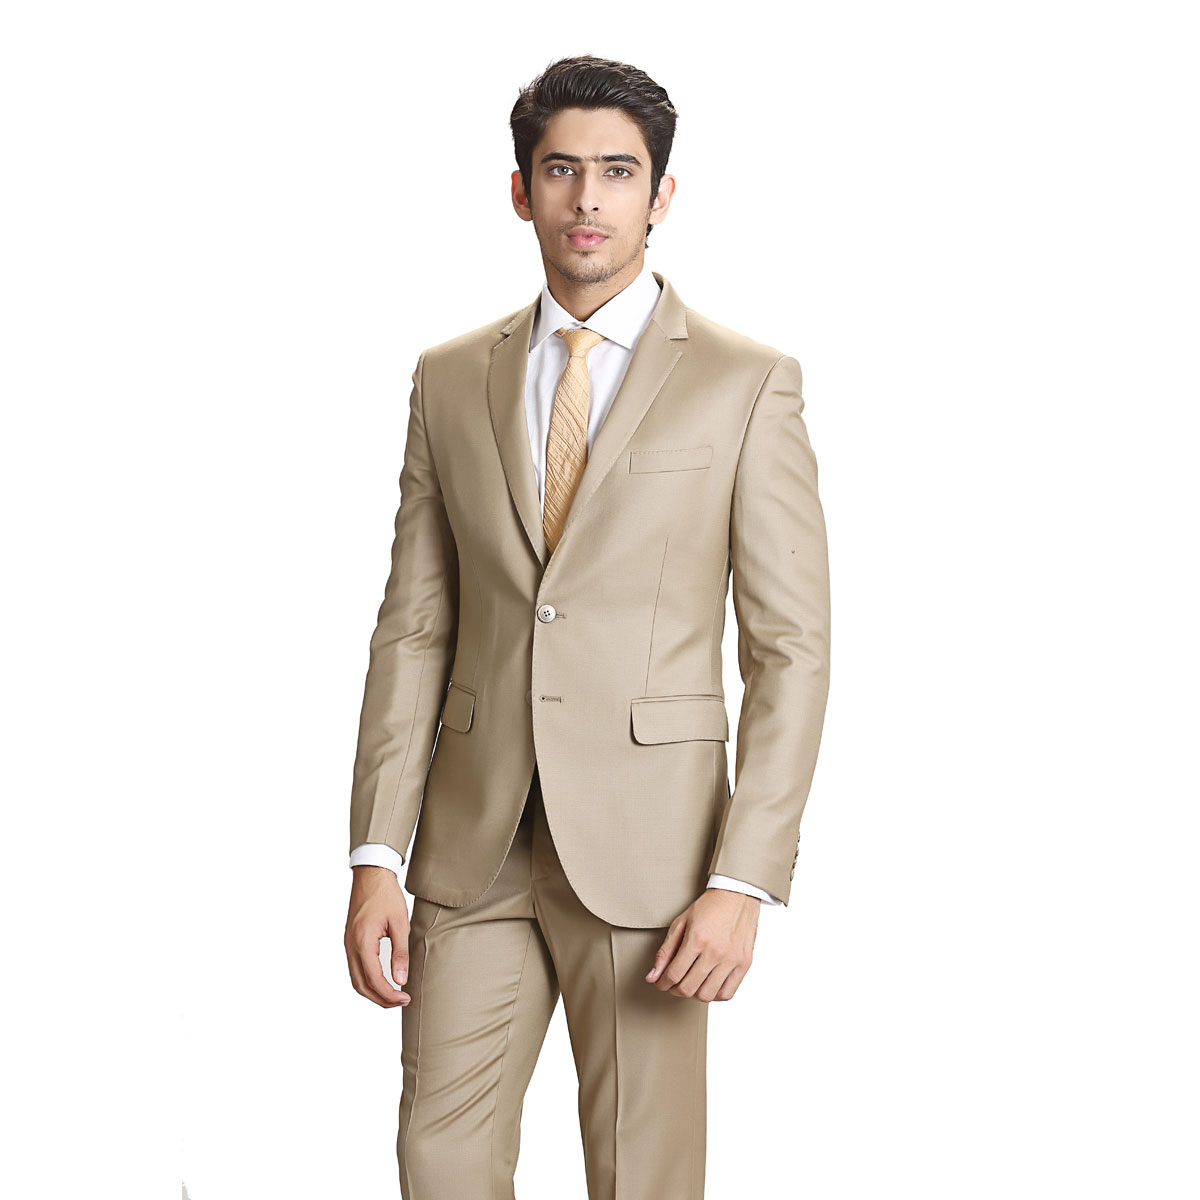 Lucky Always Beige Suit - Best Bespoke Suits. Premium Custom ...